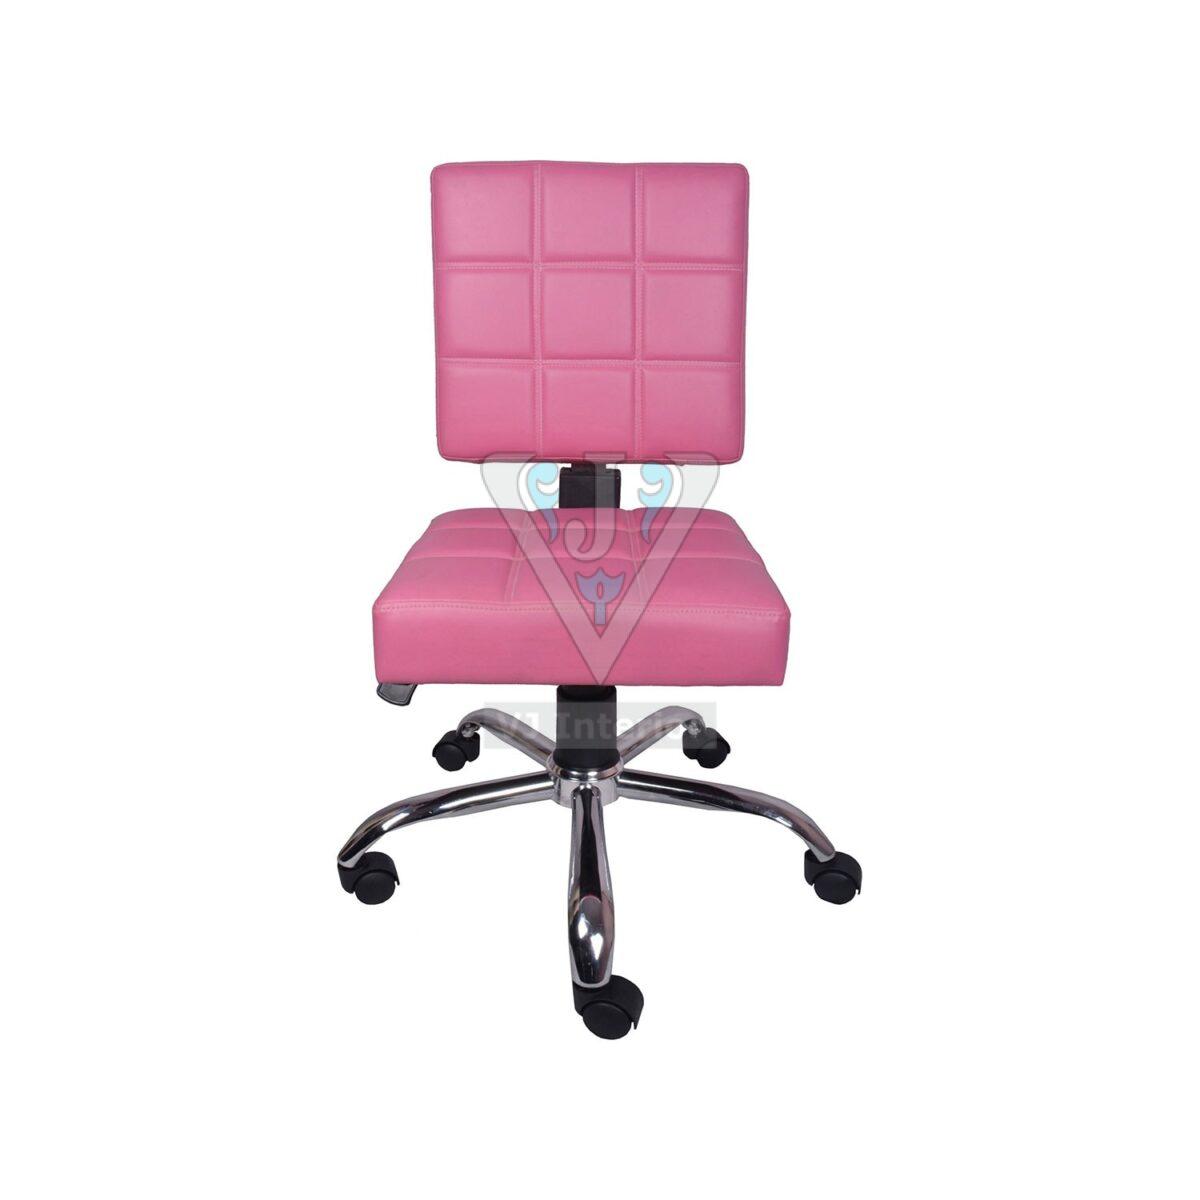 THE ROSADO STUDY AND TASK CHAIR PINK